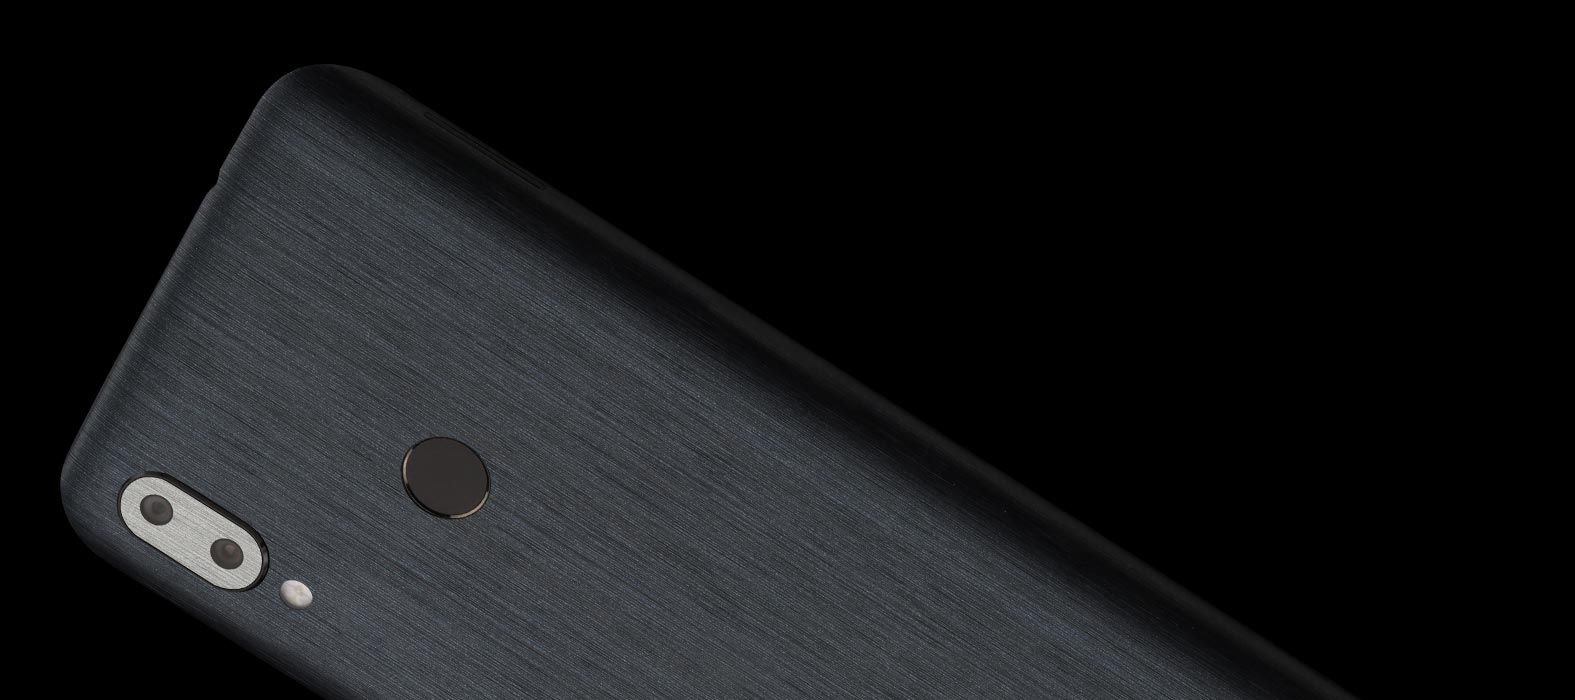 Redmi-note-7_Brushed-Graphite_Skins